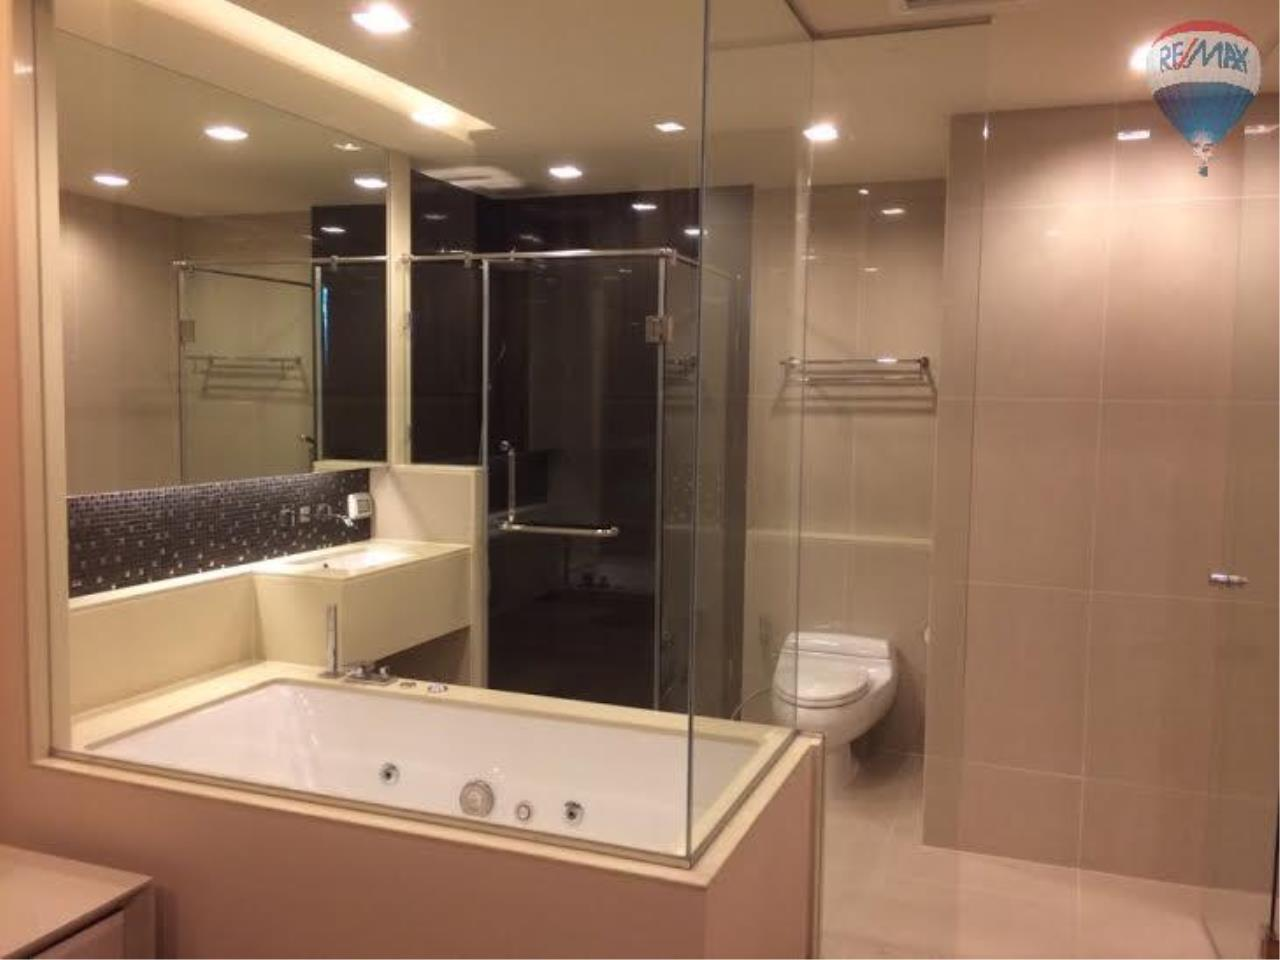 RE/MAX Properties Agency's 2 Bedrooms 80.5 Sq.M. for renting 60K in The Address Sathorn 5